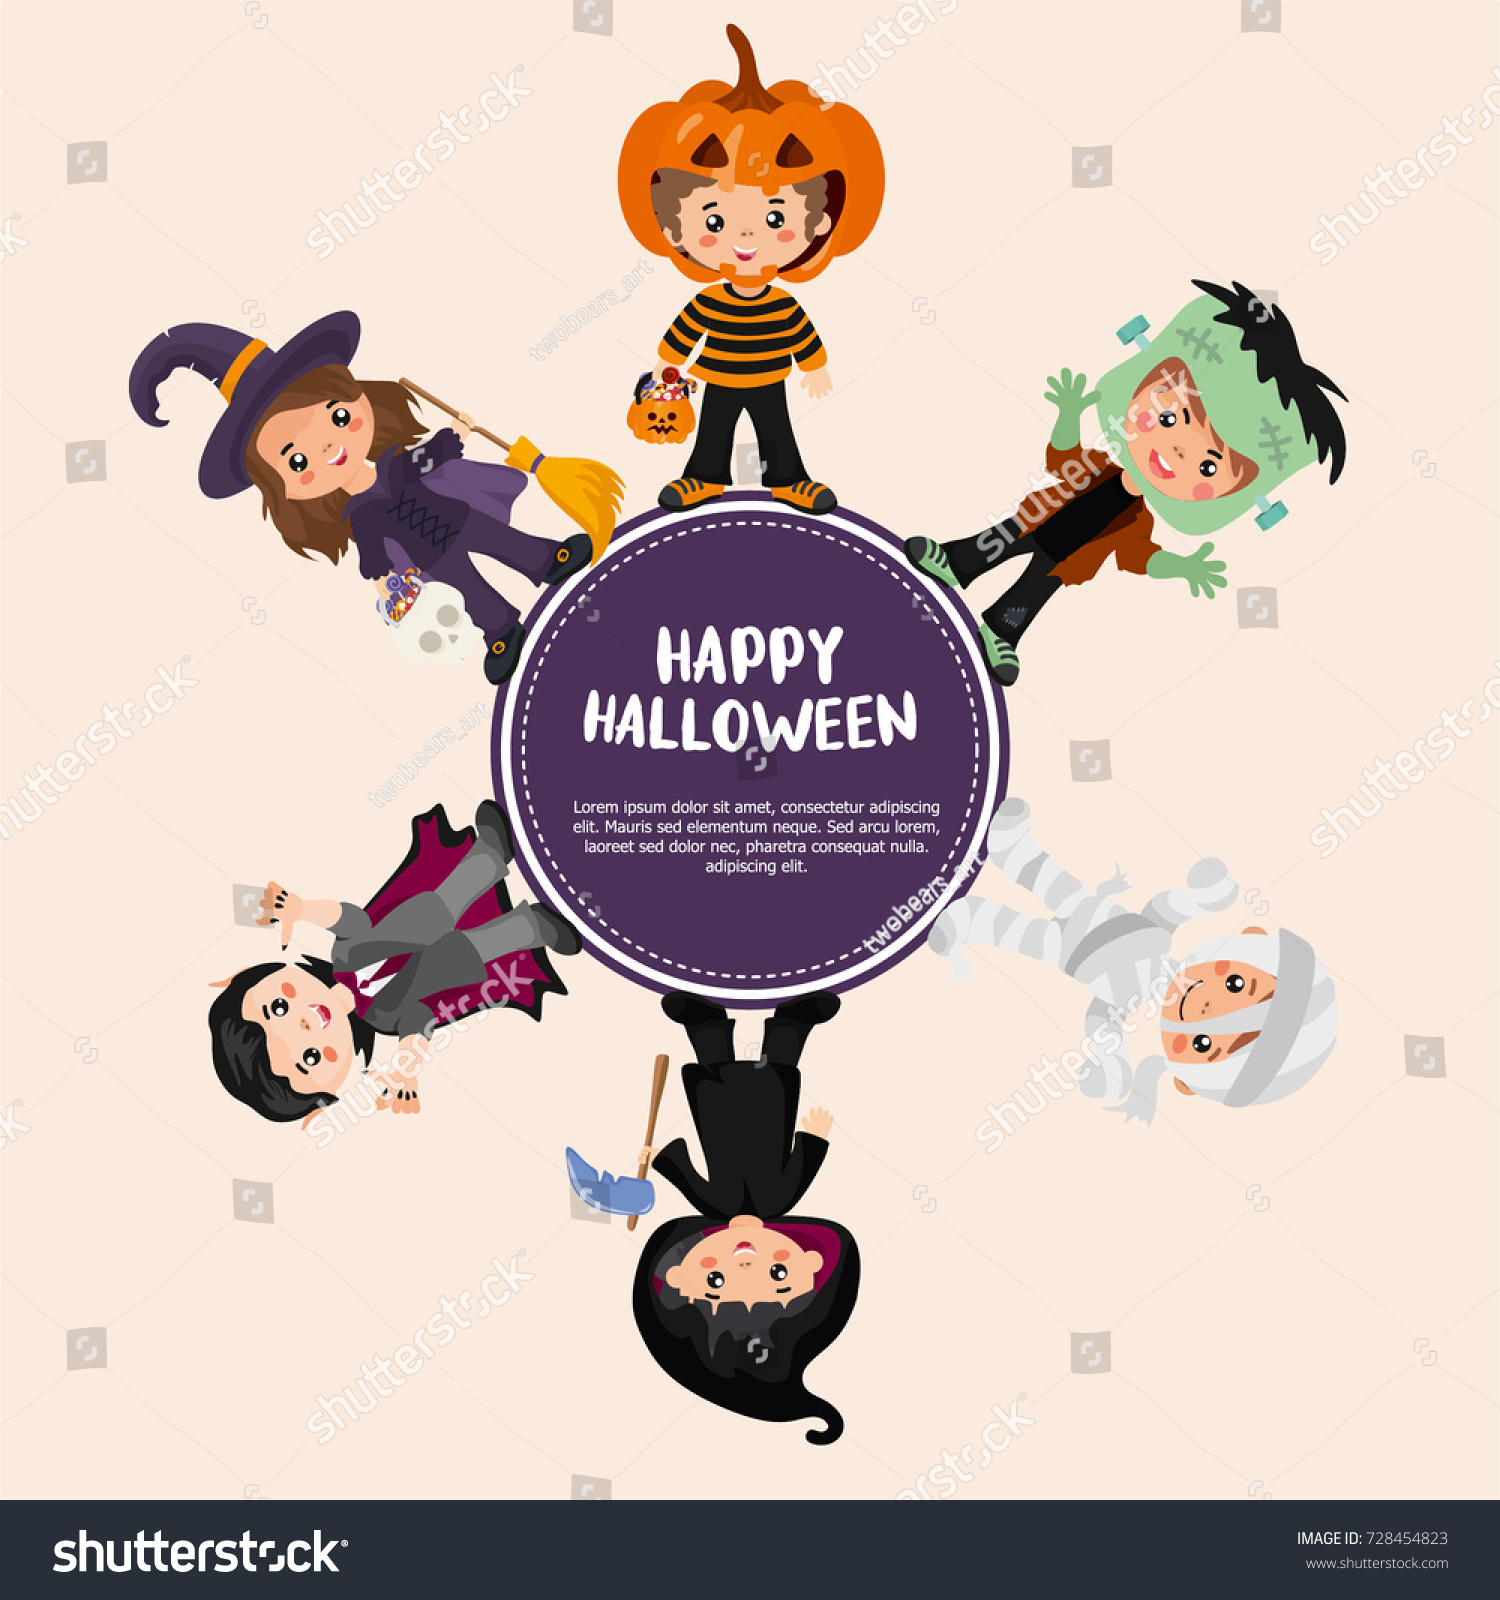 Halloween greeting card design creative frame stock vector halloween greeting card design creative frame with kids in a halloween costumes dracula kristyandbryce Choice Image